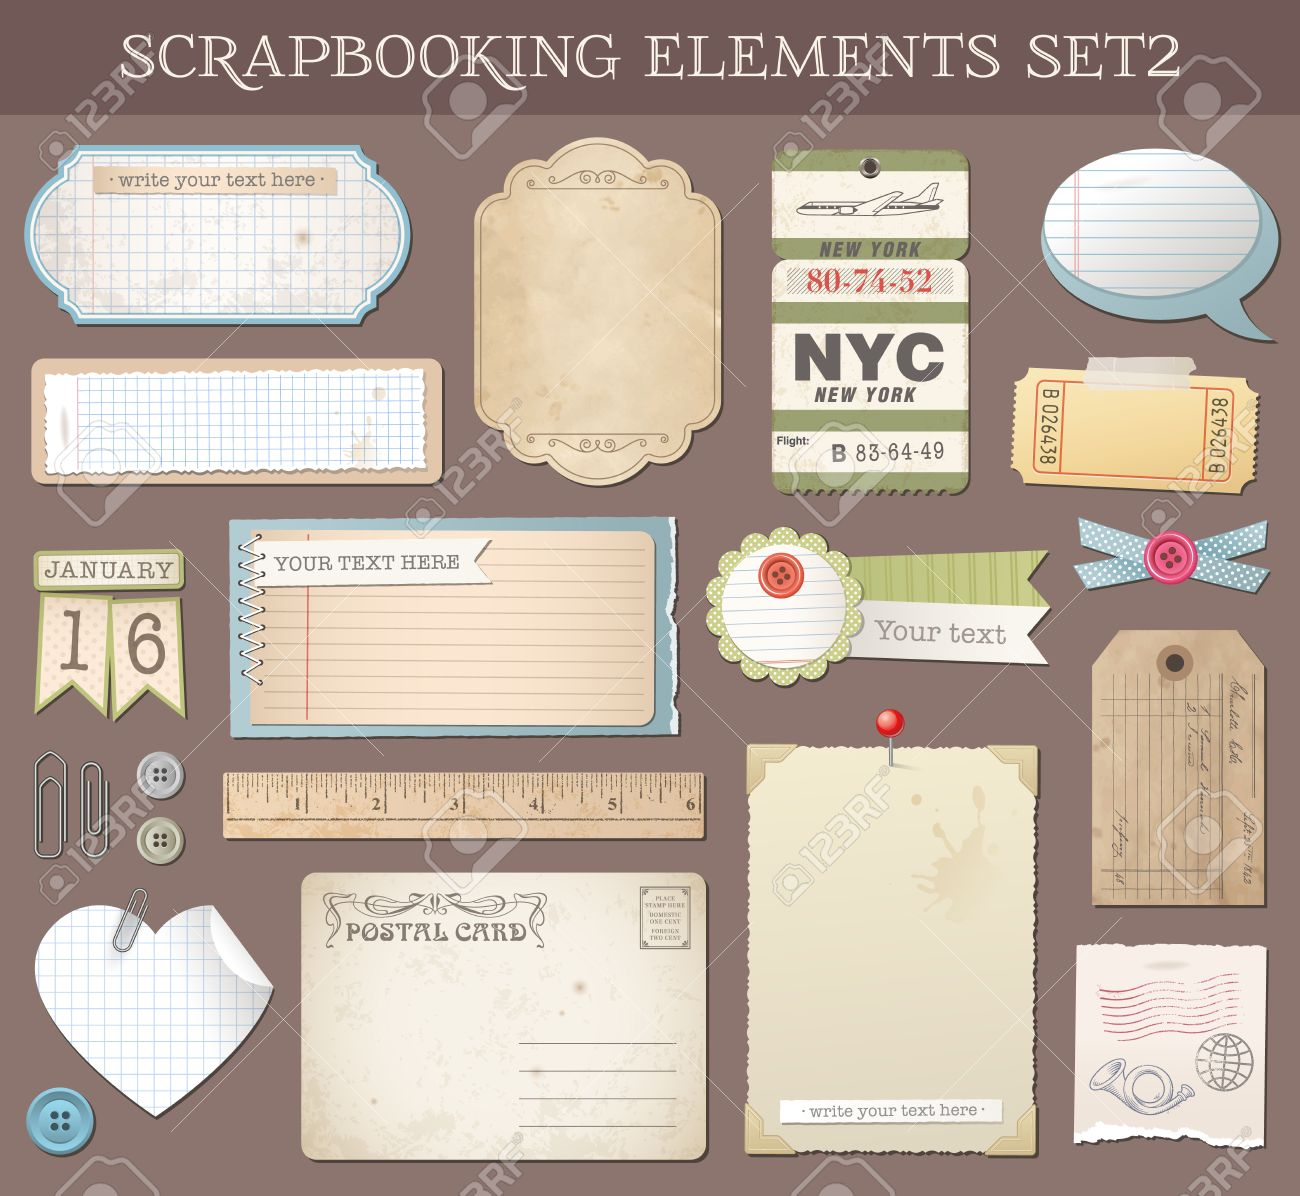 Scrapbooking Tags Templates Printable Shapes 6